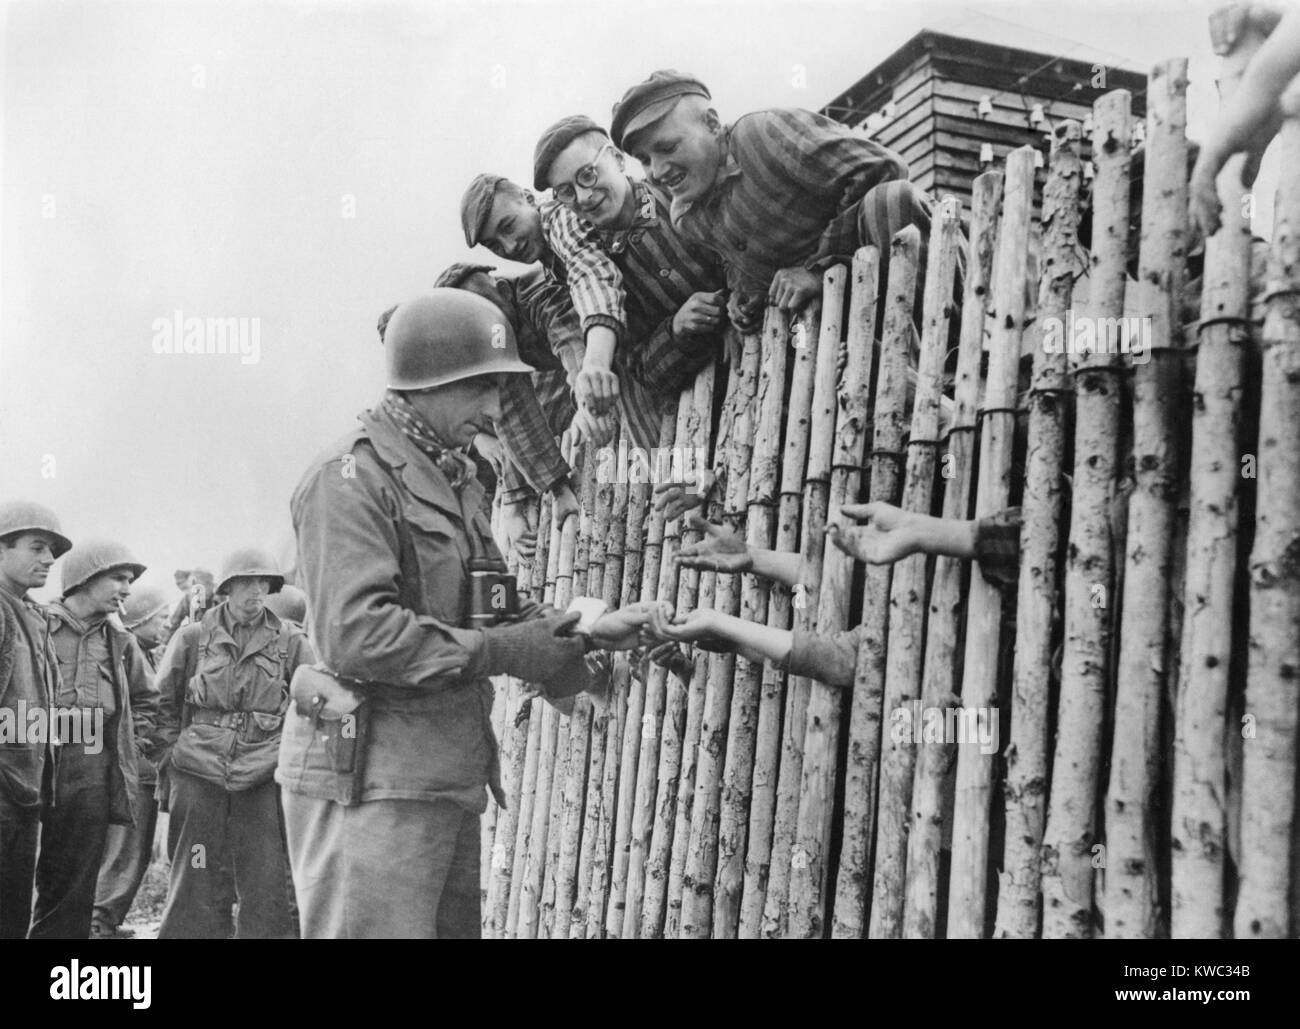 GI of the Seventh US Army gives his last cigarettes to liberated Dachau prisoners behind a stockade. April 29, 1945, - Stock Image